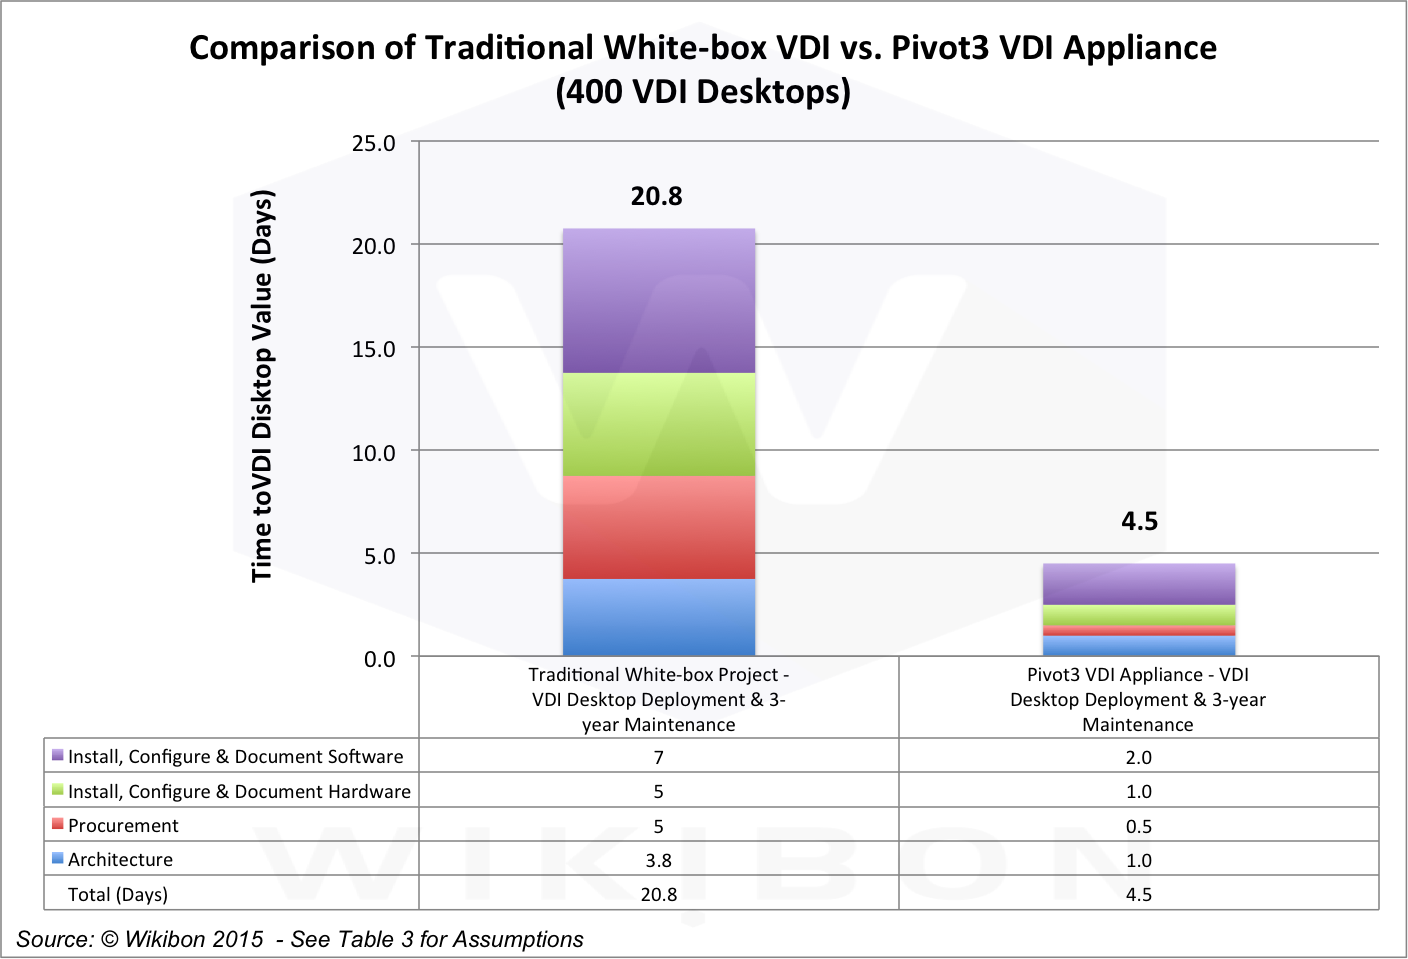 Breakout of Time-to-Value Comparison of Traditional White Box VDI with Pivot3 VDI Appliance (400 VDI Desktops). Source: © Wikibon 2015, based on the assumptions and calculations in Table 3 in the Footnotes, itself derived from Tables 5 & 6 in the Footnotes below.